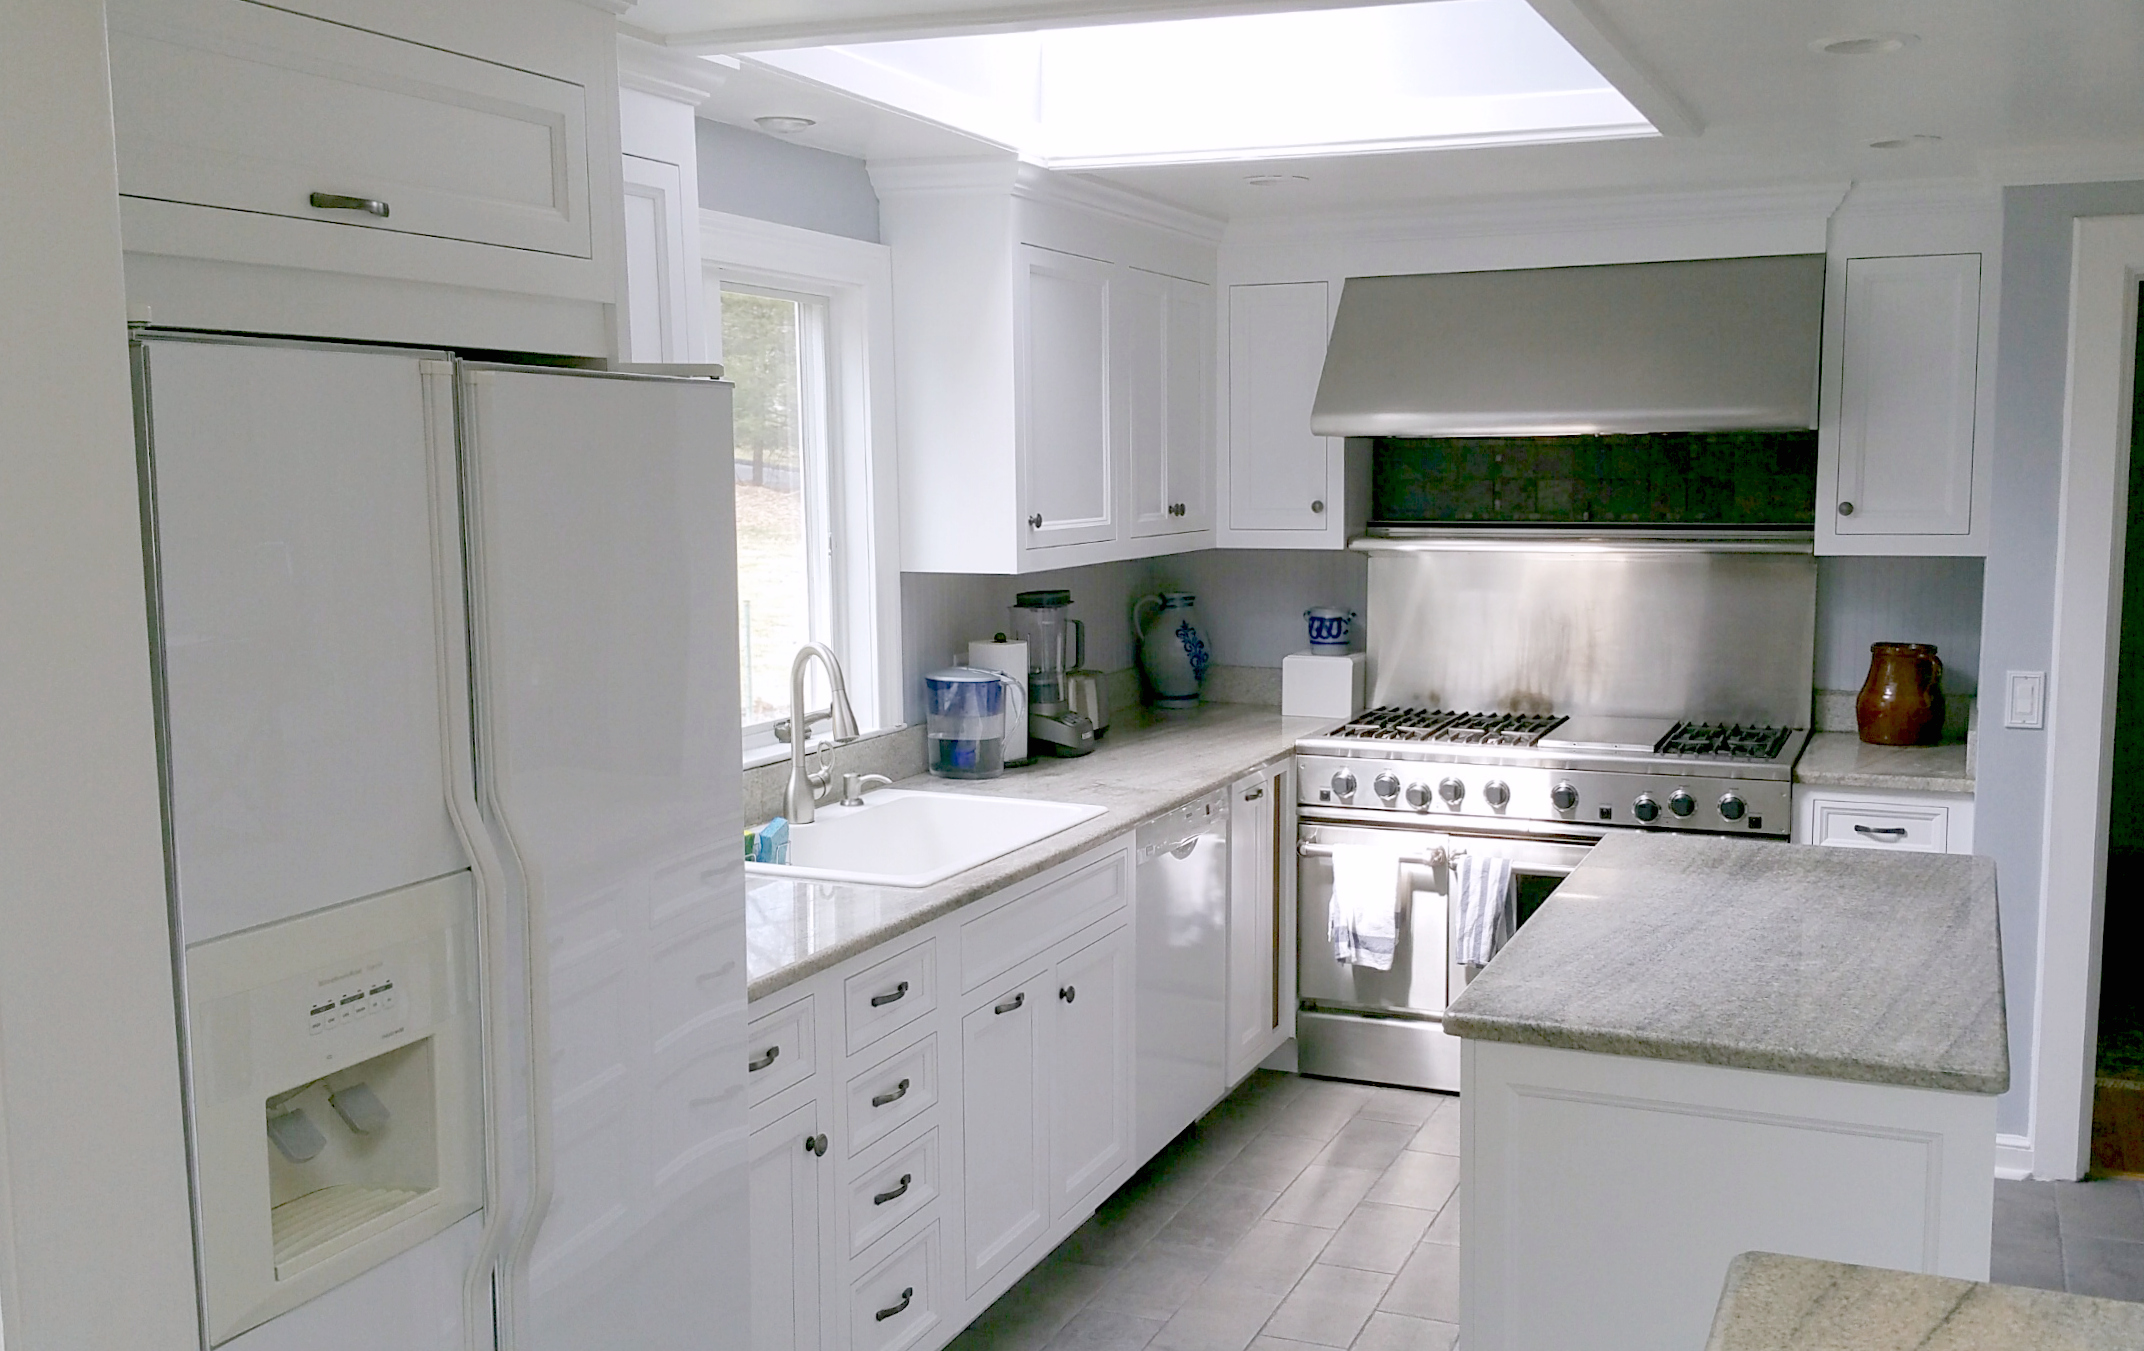 Wilton CT - White Kitchen Cabinet Remodel Project (After)